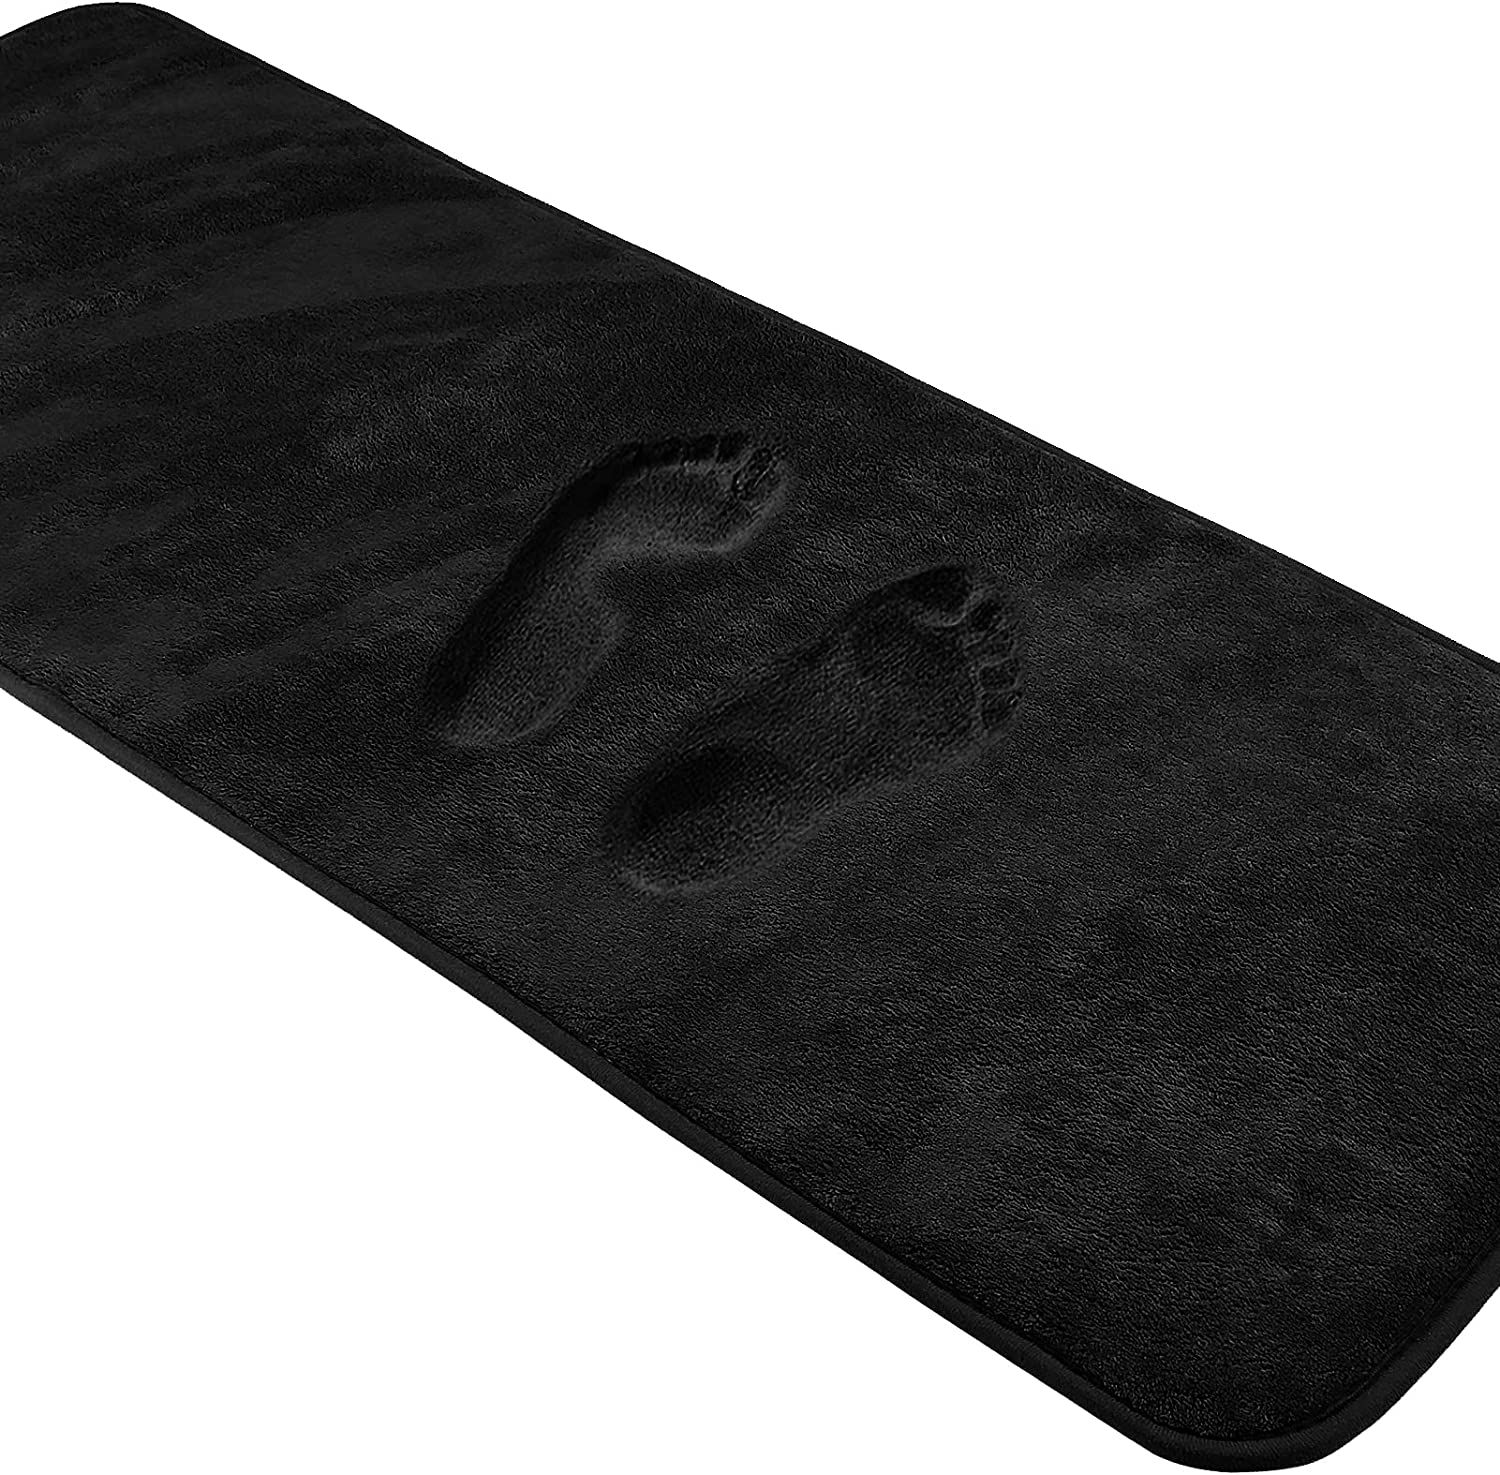 Black Memory Foam Max 46% OFF Bath Mat Easy-to-use Runner Absorbent 60 Non x 20 Inches